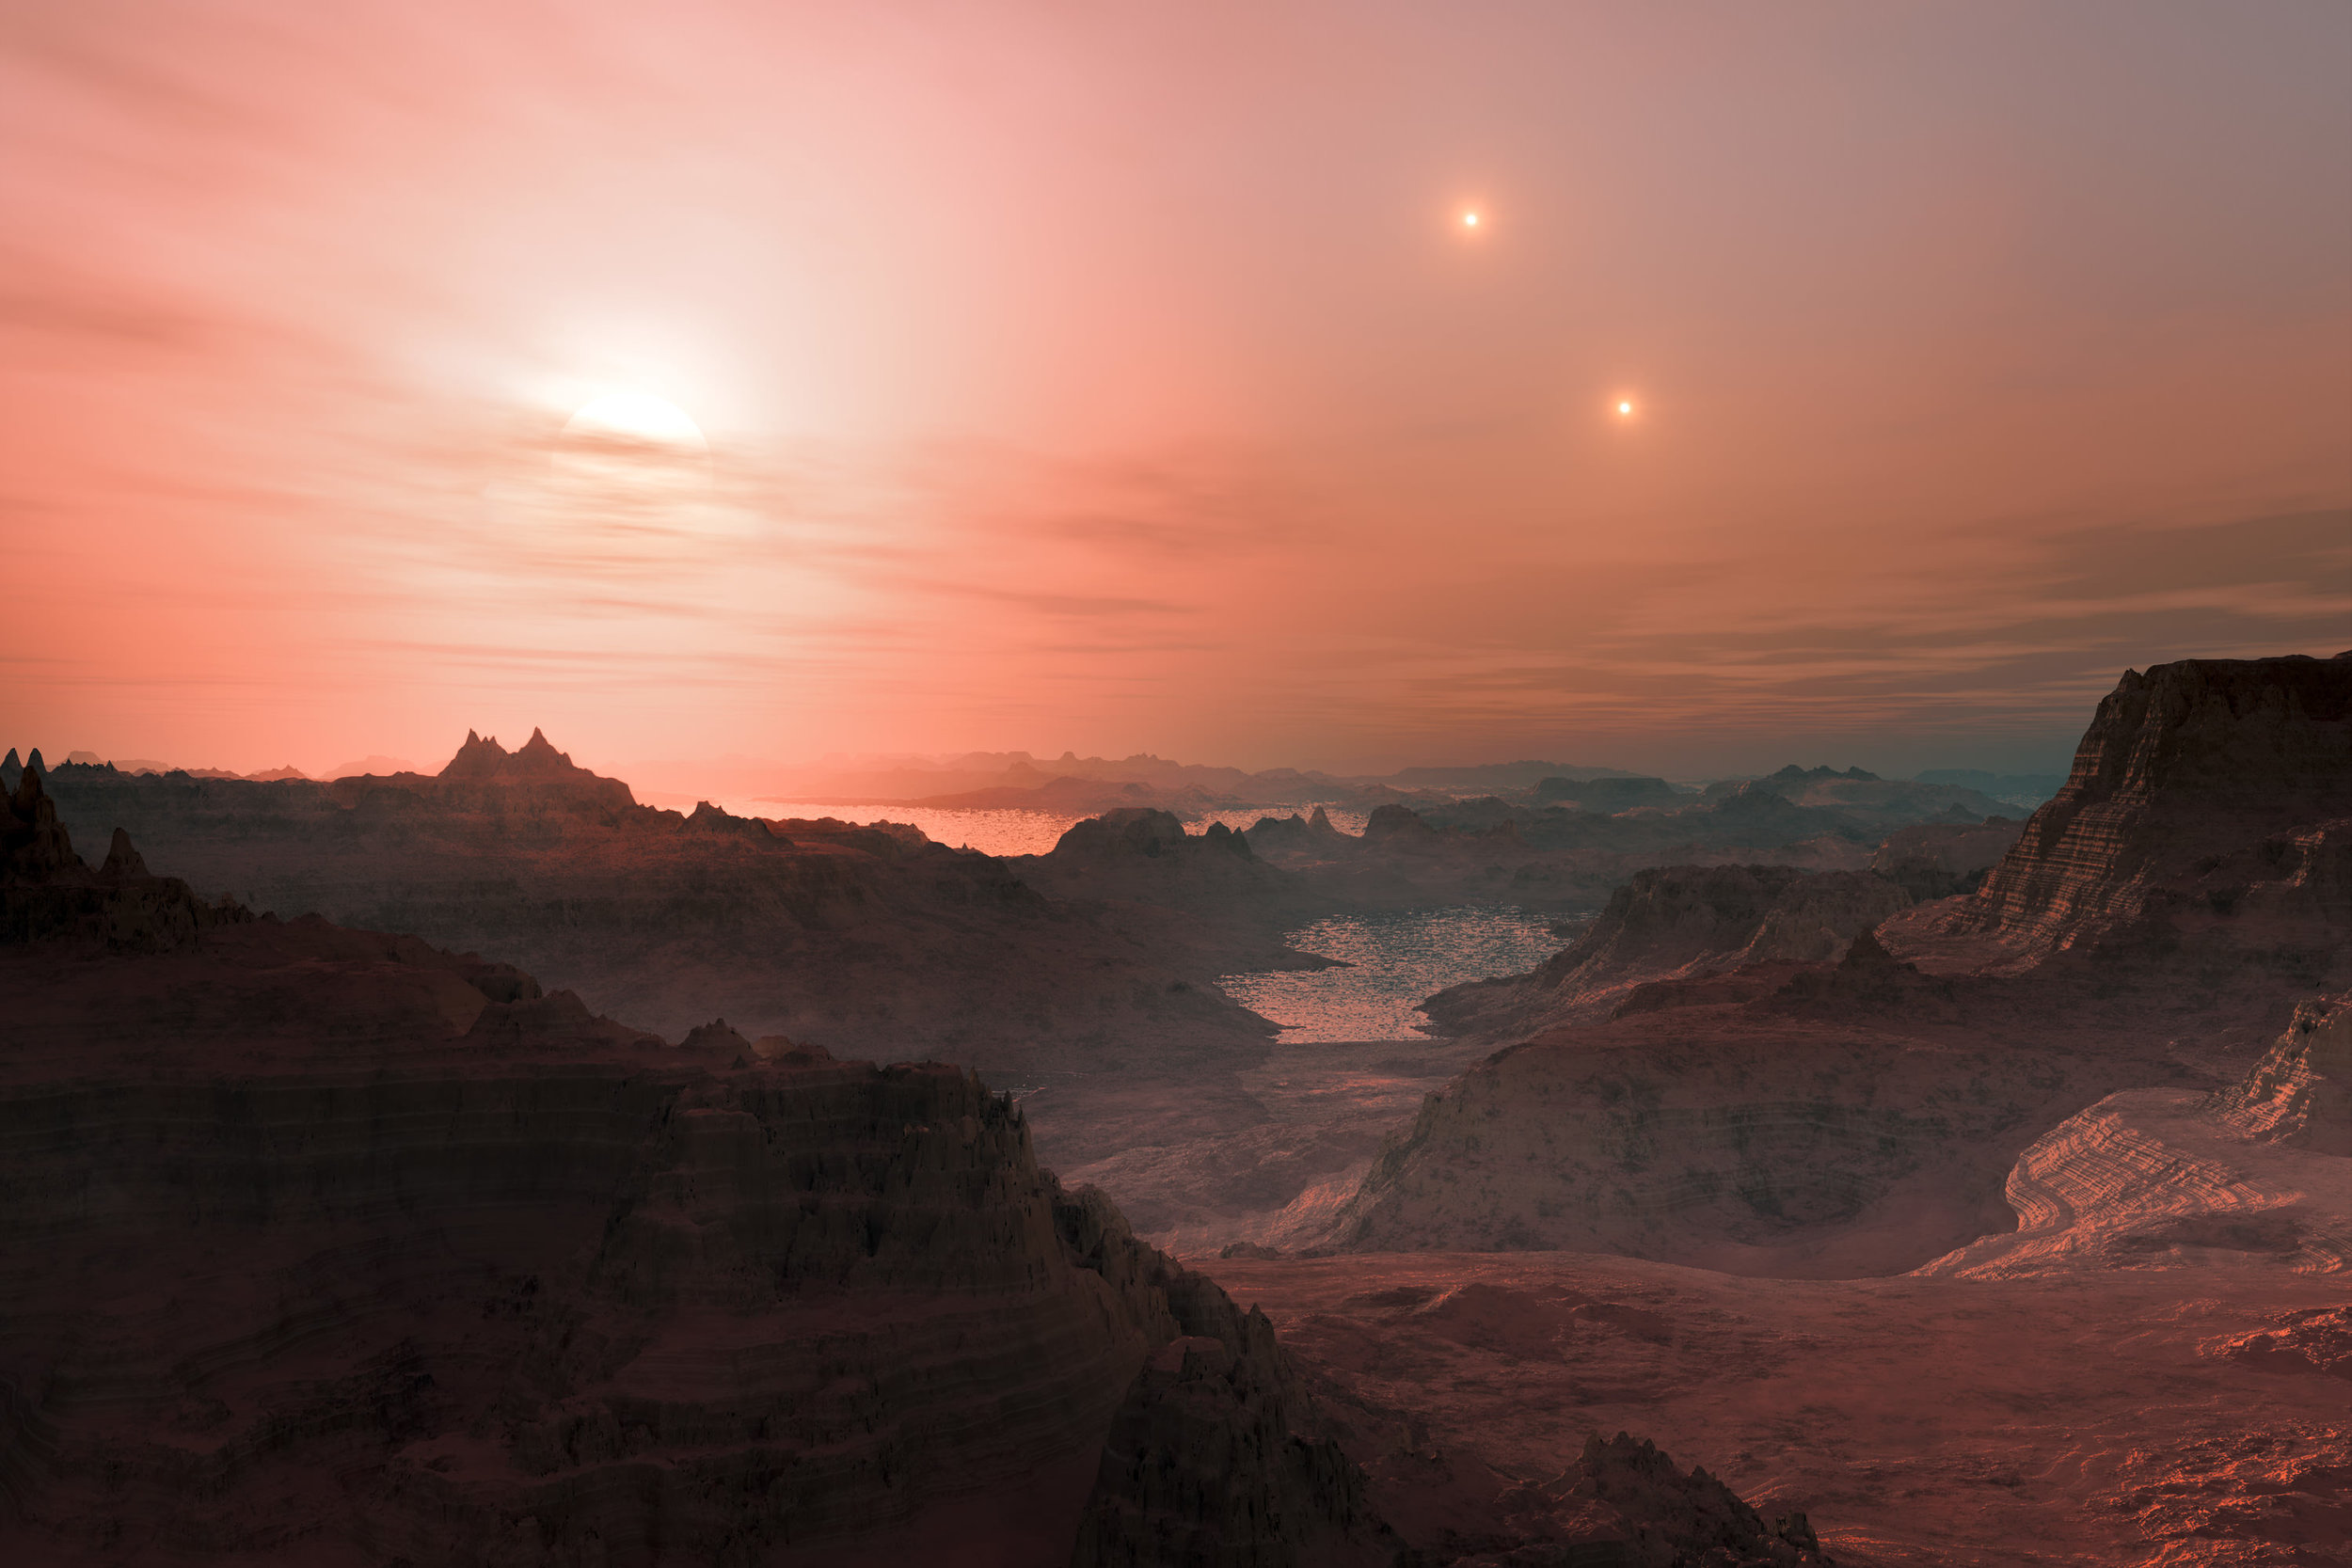 Artist's impression of a sunset seen from the surface of an Earth-like exoplanet. - Image Credit: ESO/L. Calçada